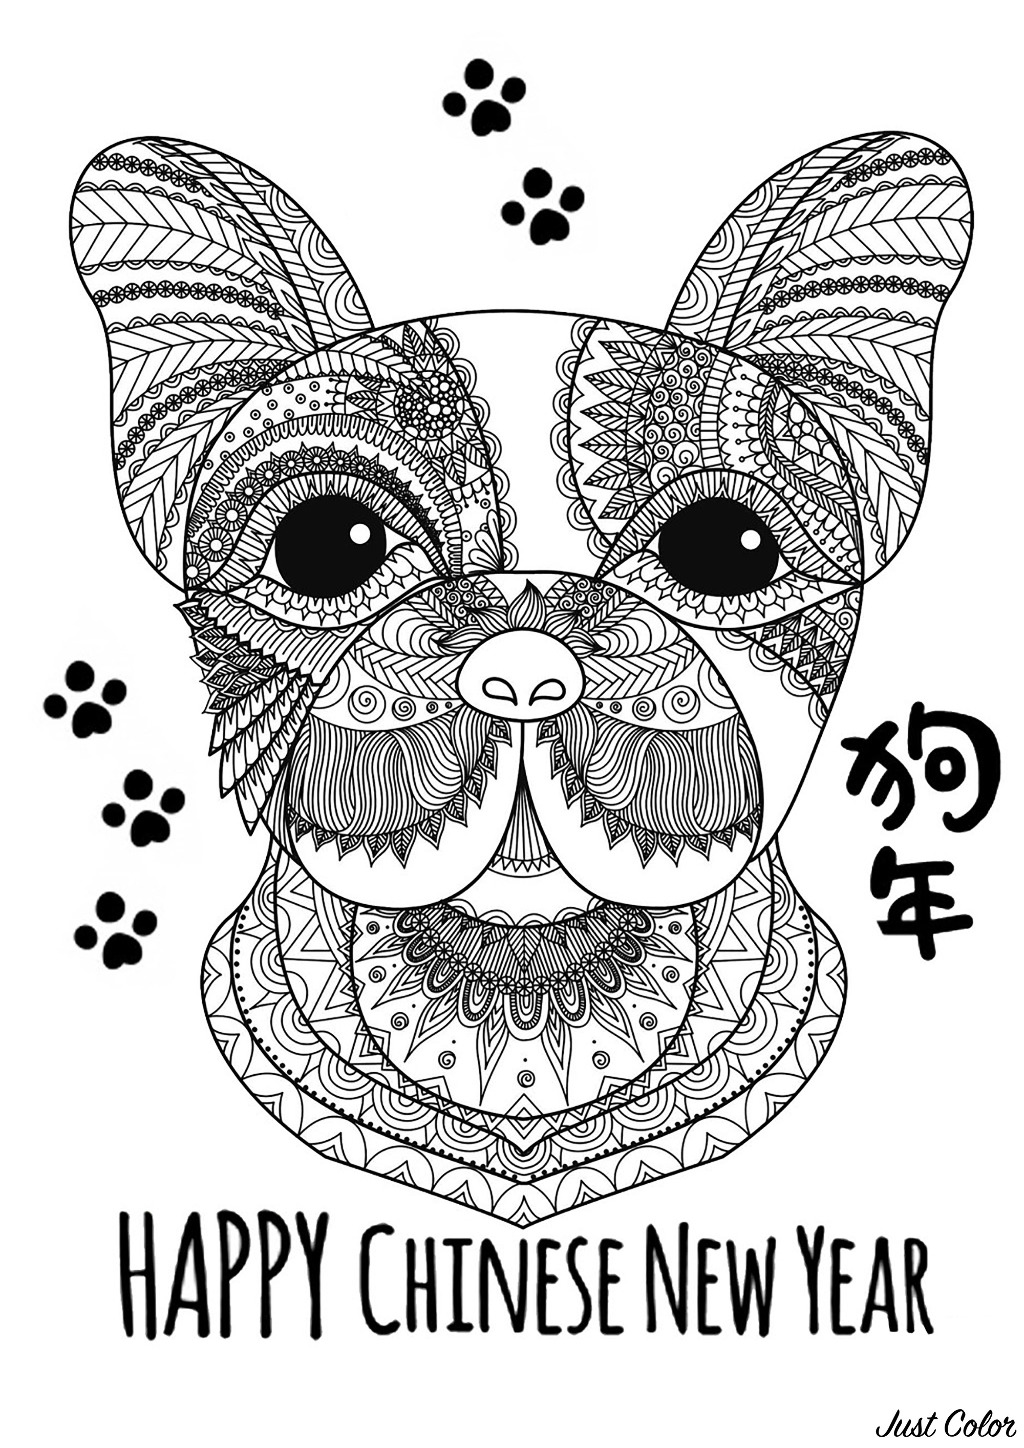 Happy 2018 Chinese New Year ! Year of the Dog